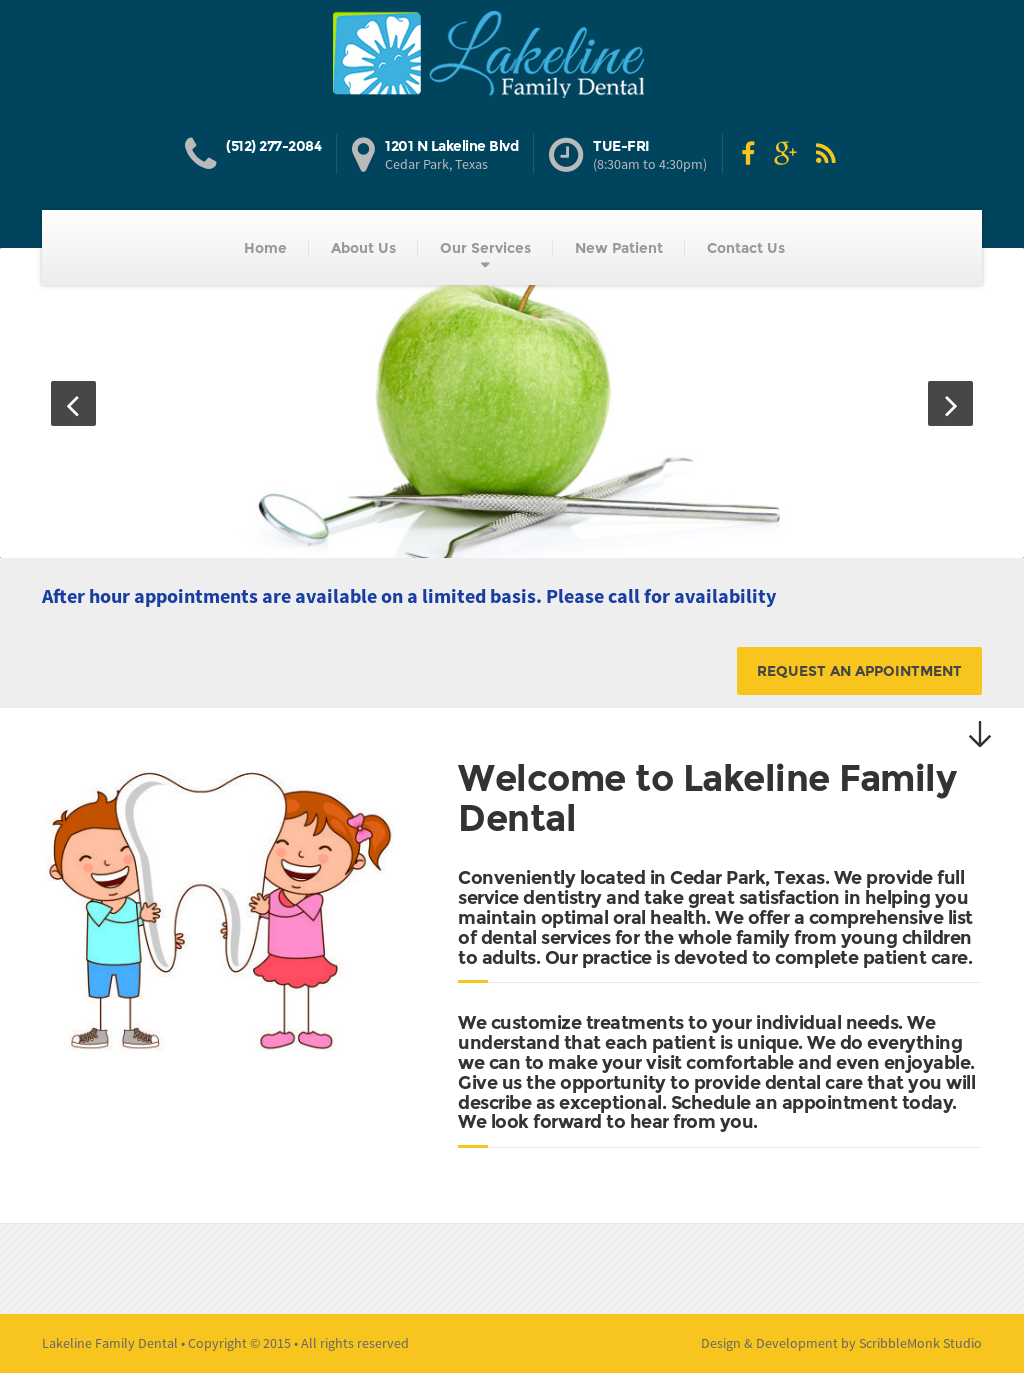 Lakeline Family Dental Clinic Competitors, Revenue and Employees